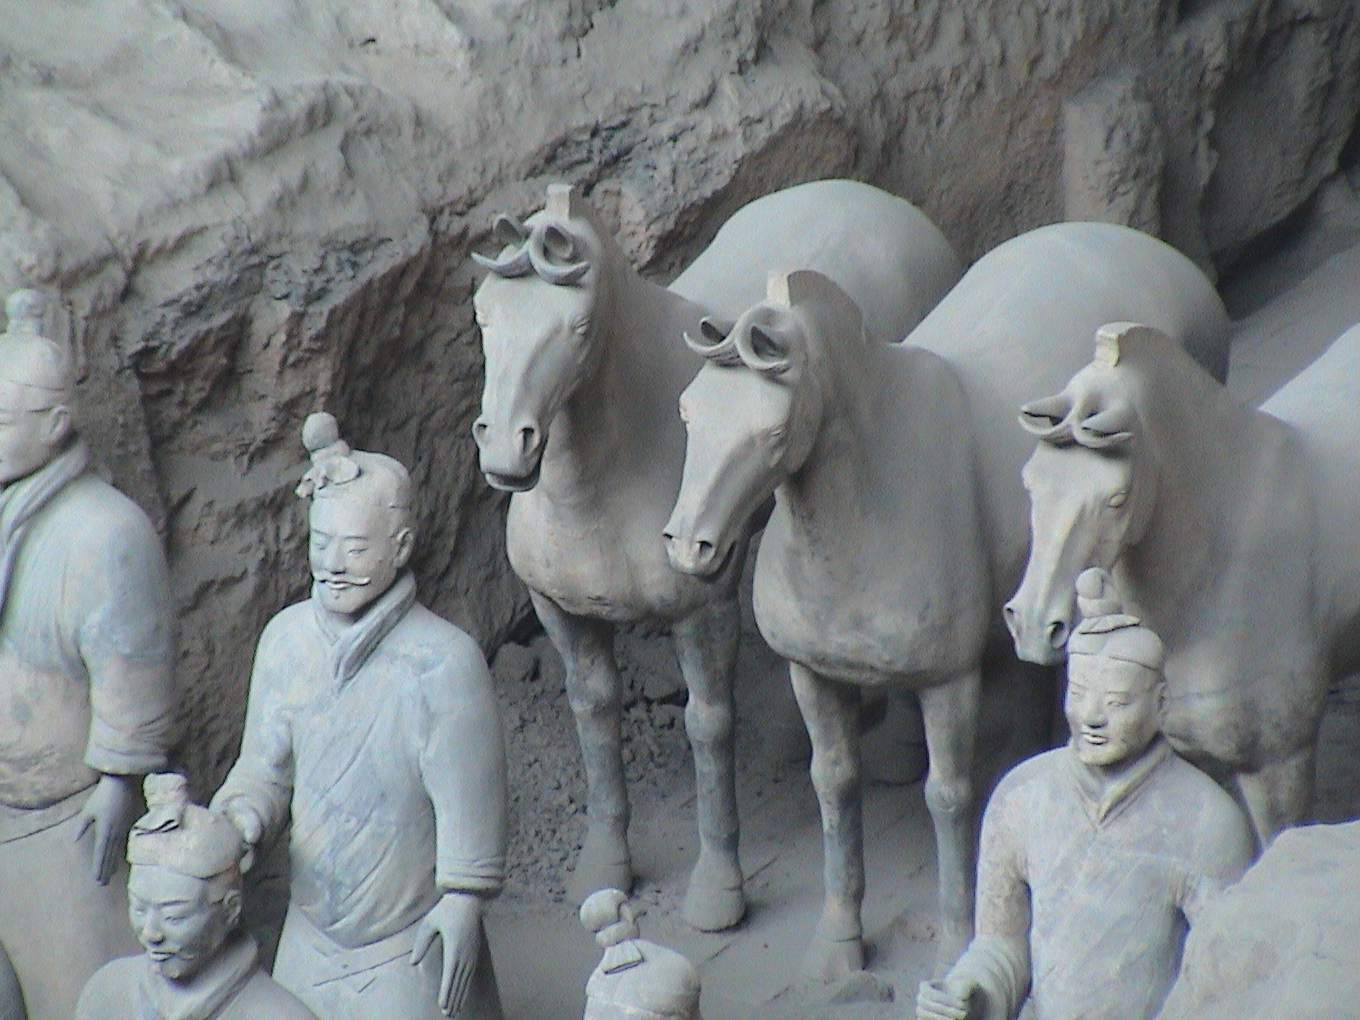 Terracotta soldiers and horses.